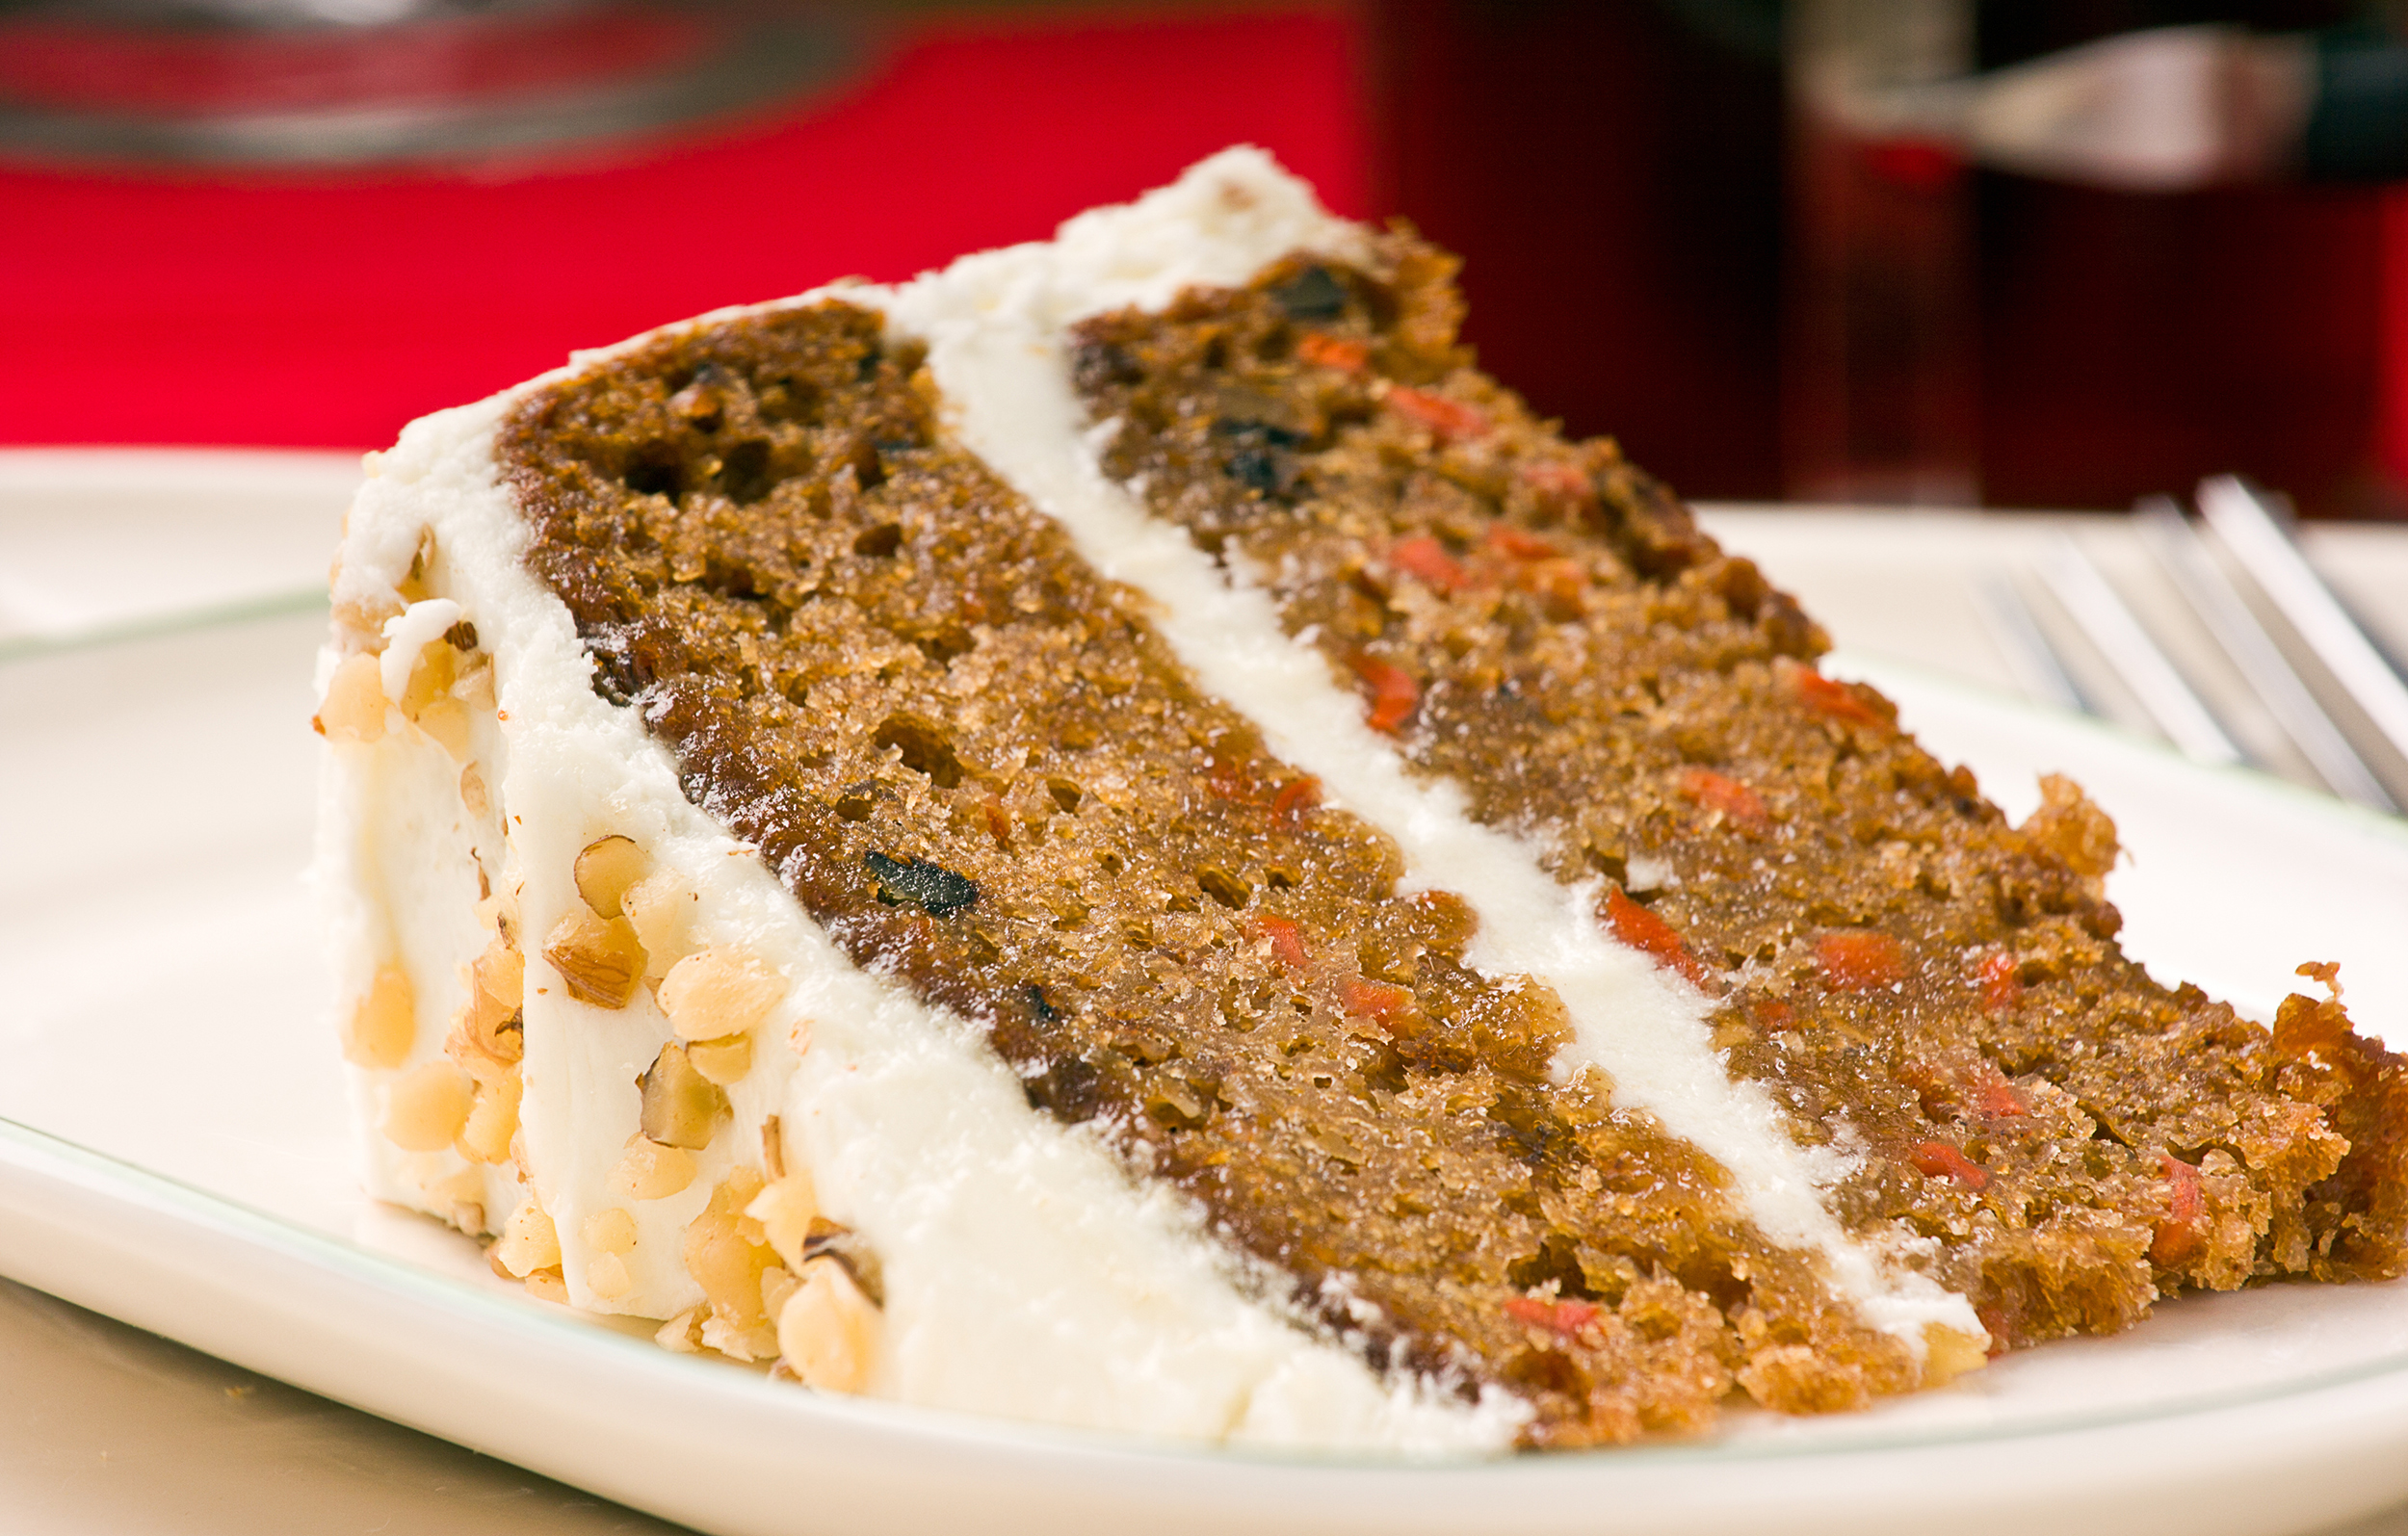 SIX INCH DELUXE CARROT CAKE